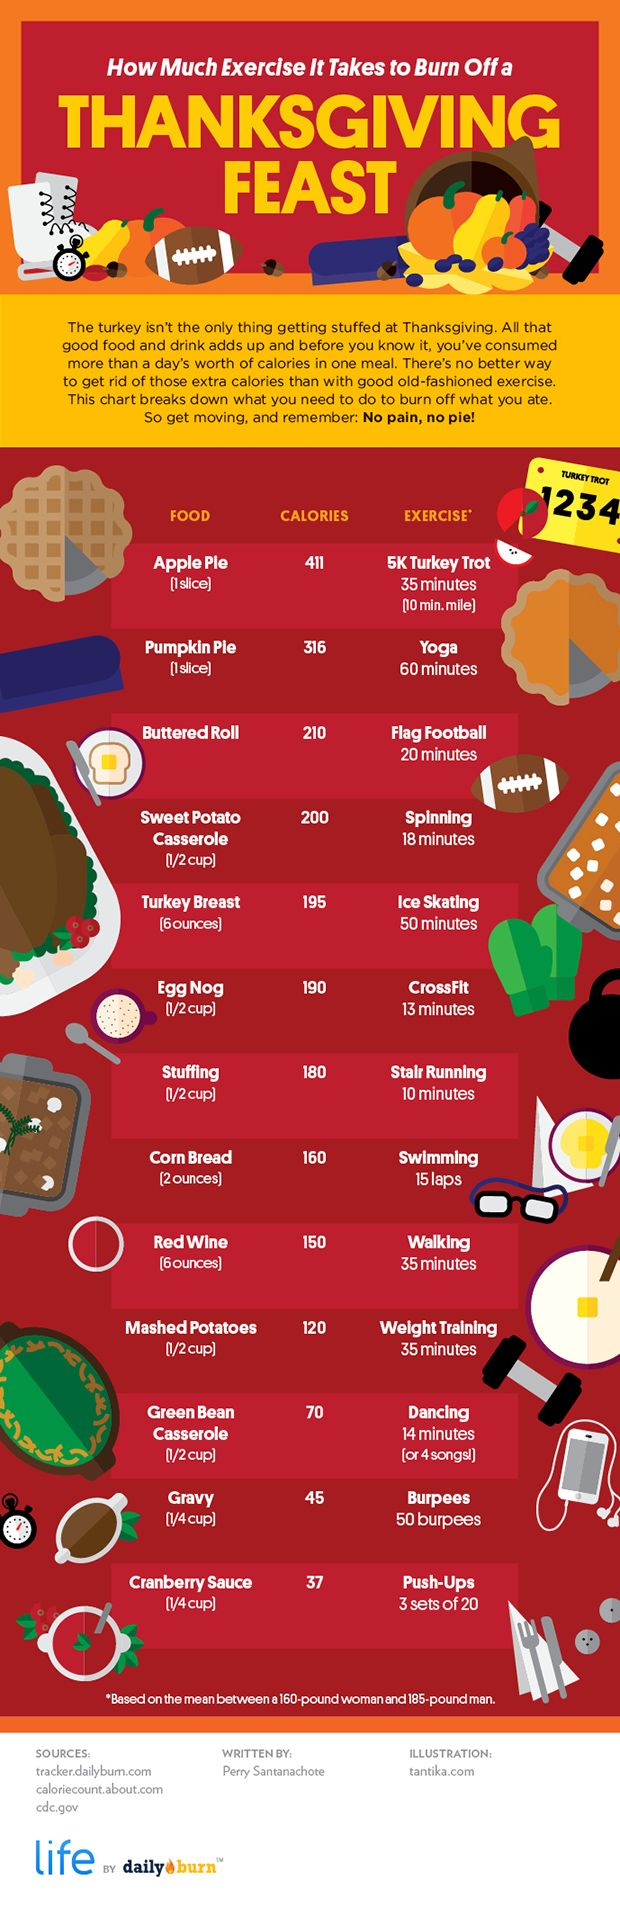 How Much Exercise It Takes to Work Off a Thanksgiving Feast